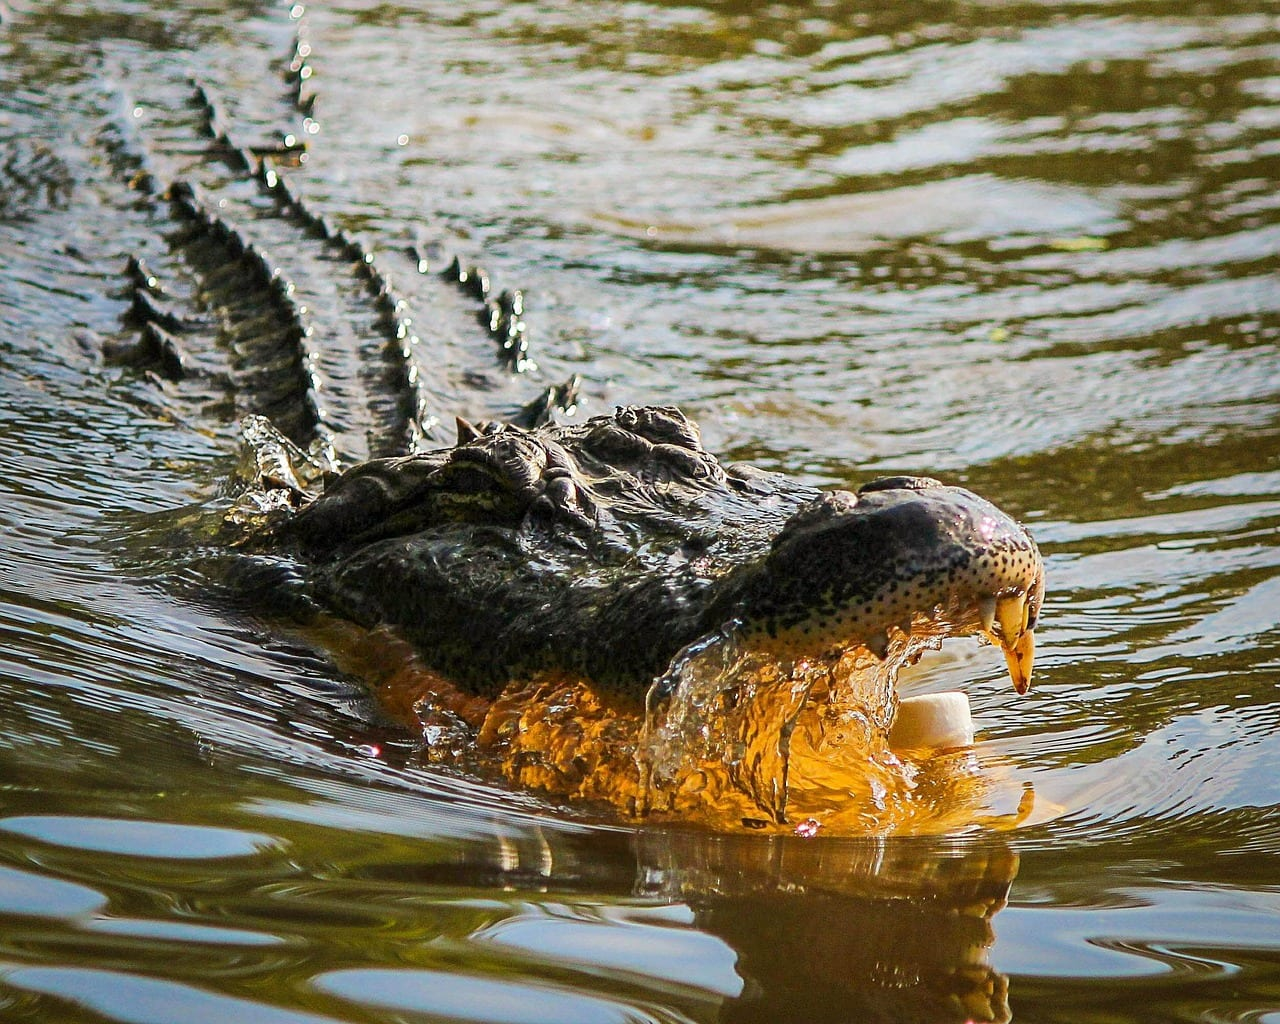 Alligator with its mouth opened